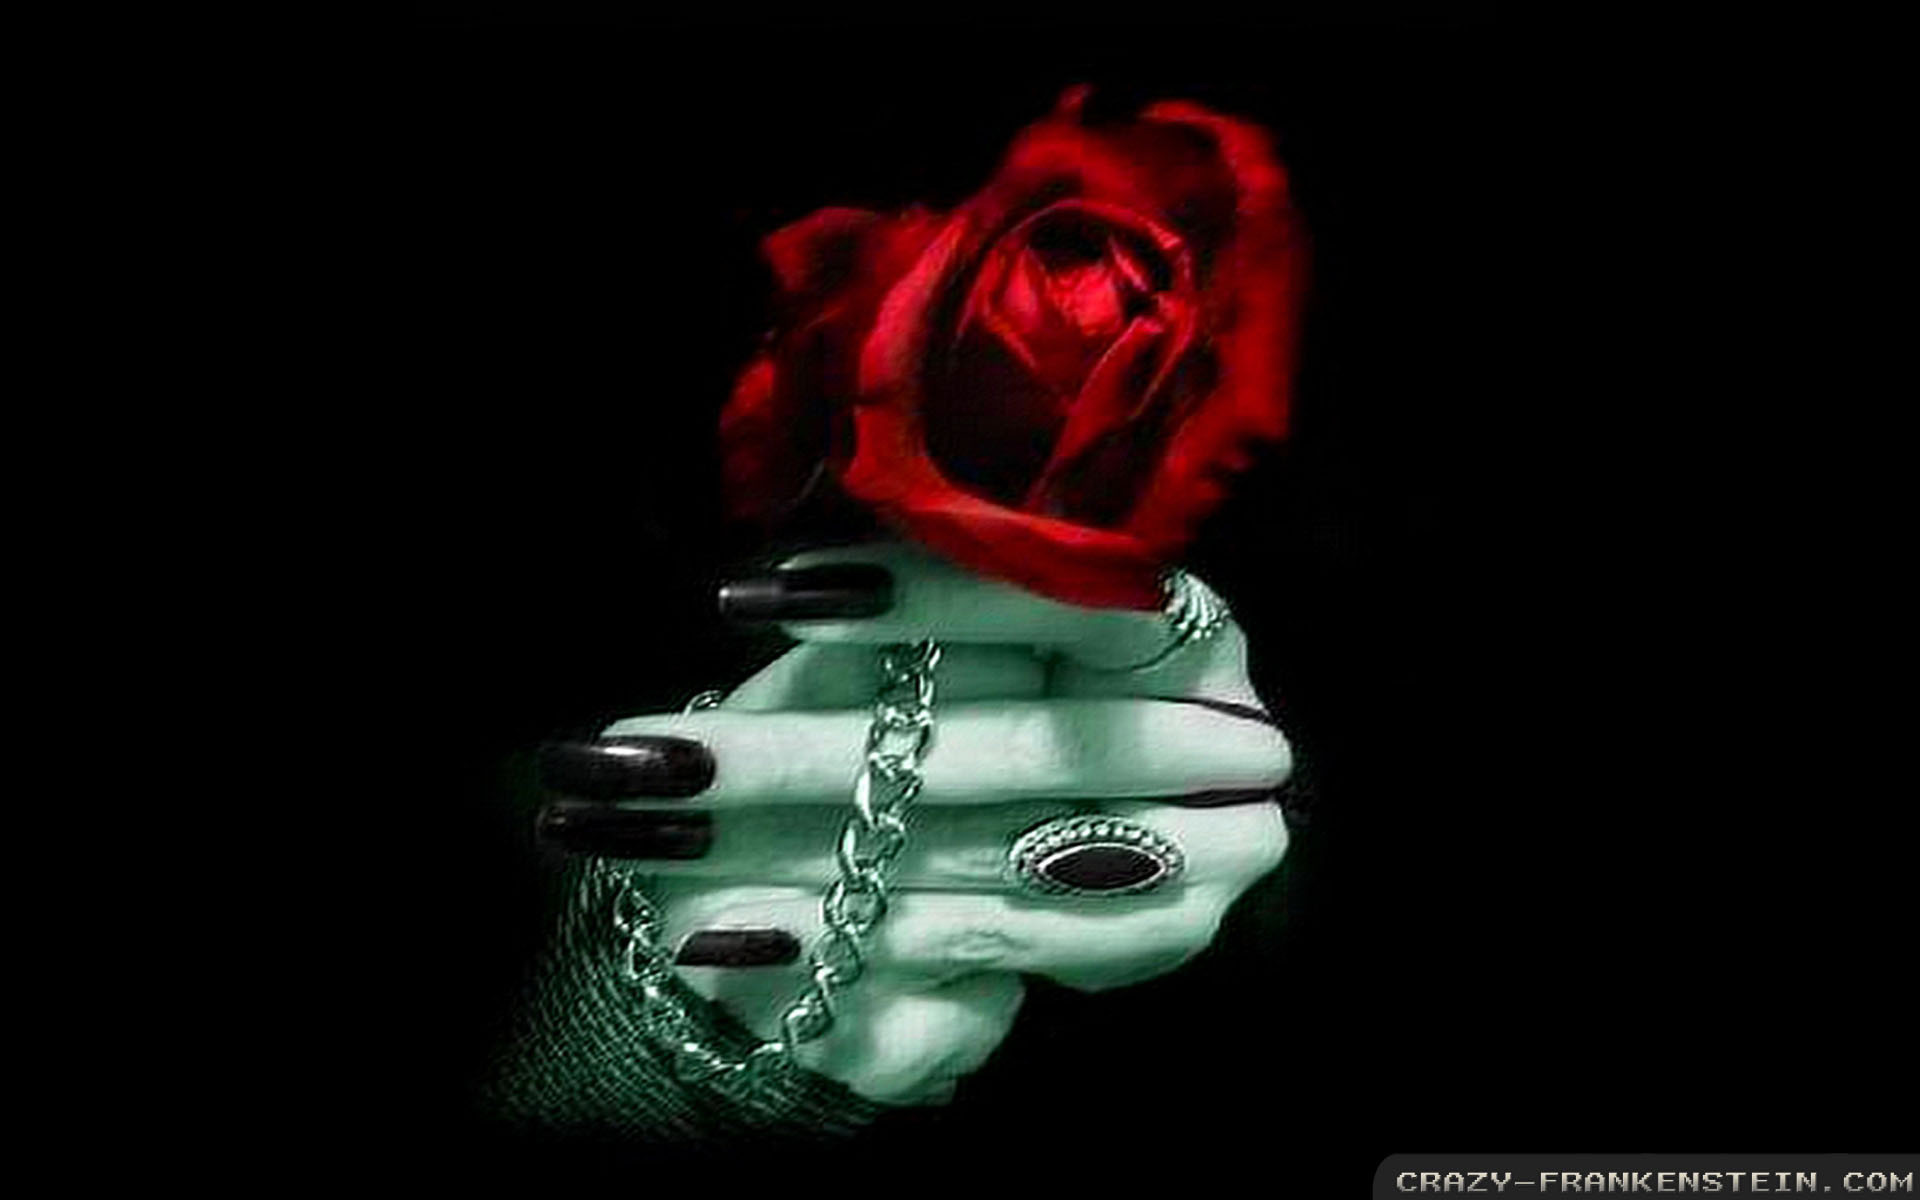 Wallpaper: Beautiful Gothic Rose Resolution: 1024×768 | 1280×1024 |  1600×1200. Widescreen Res: 1440×900 | 1680×1050 | 1920×1200